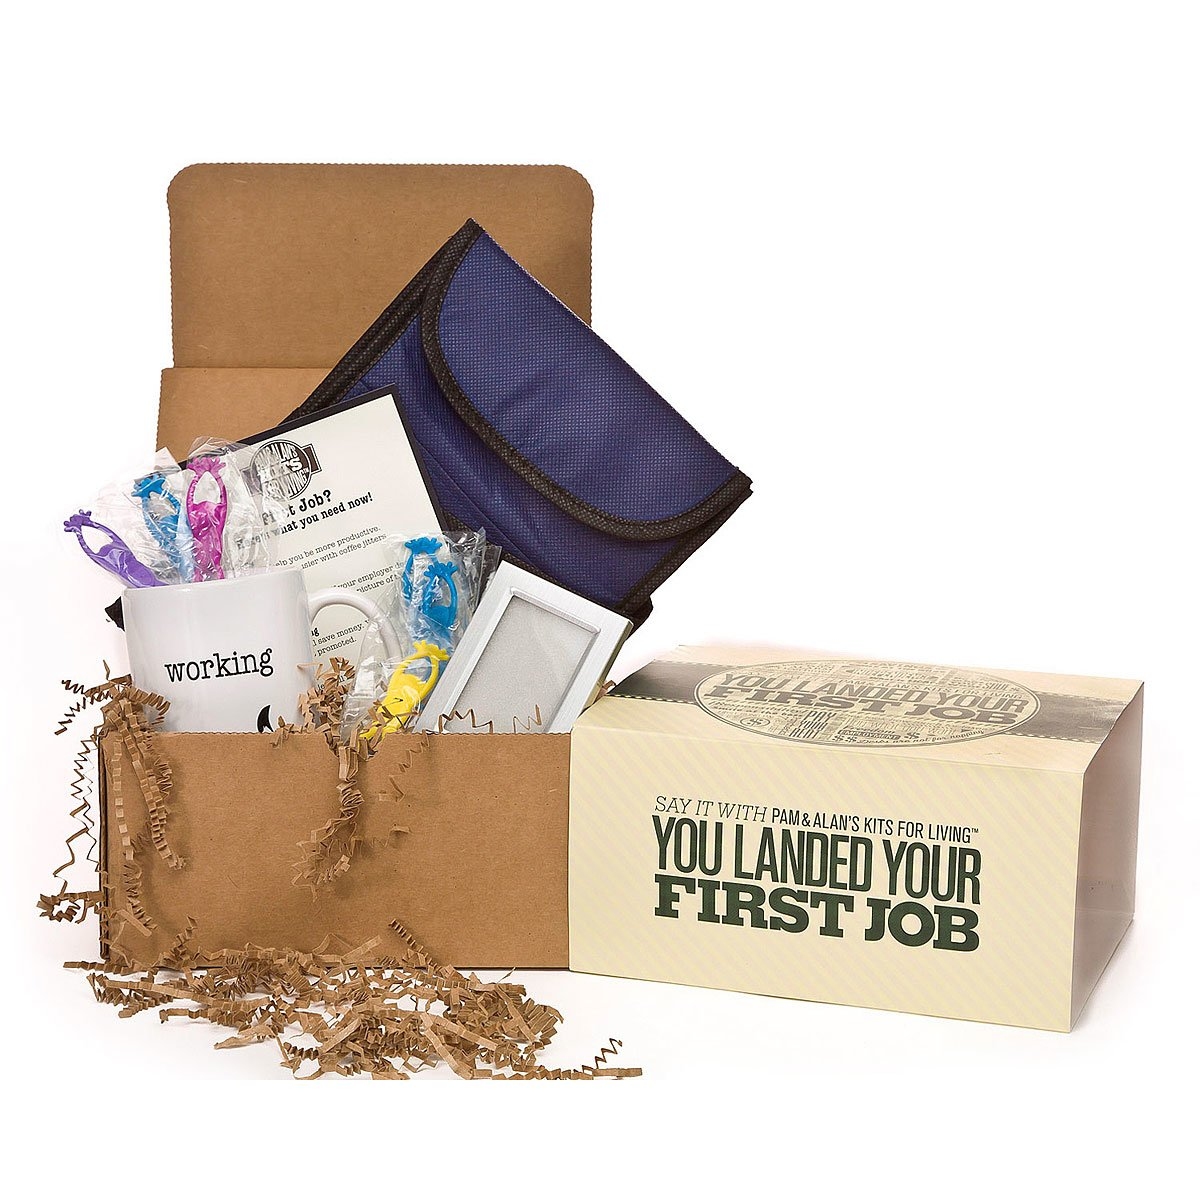 you landed your first job kit congratulations gift for new job you landed your first job kit 1 thumbnail